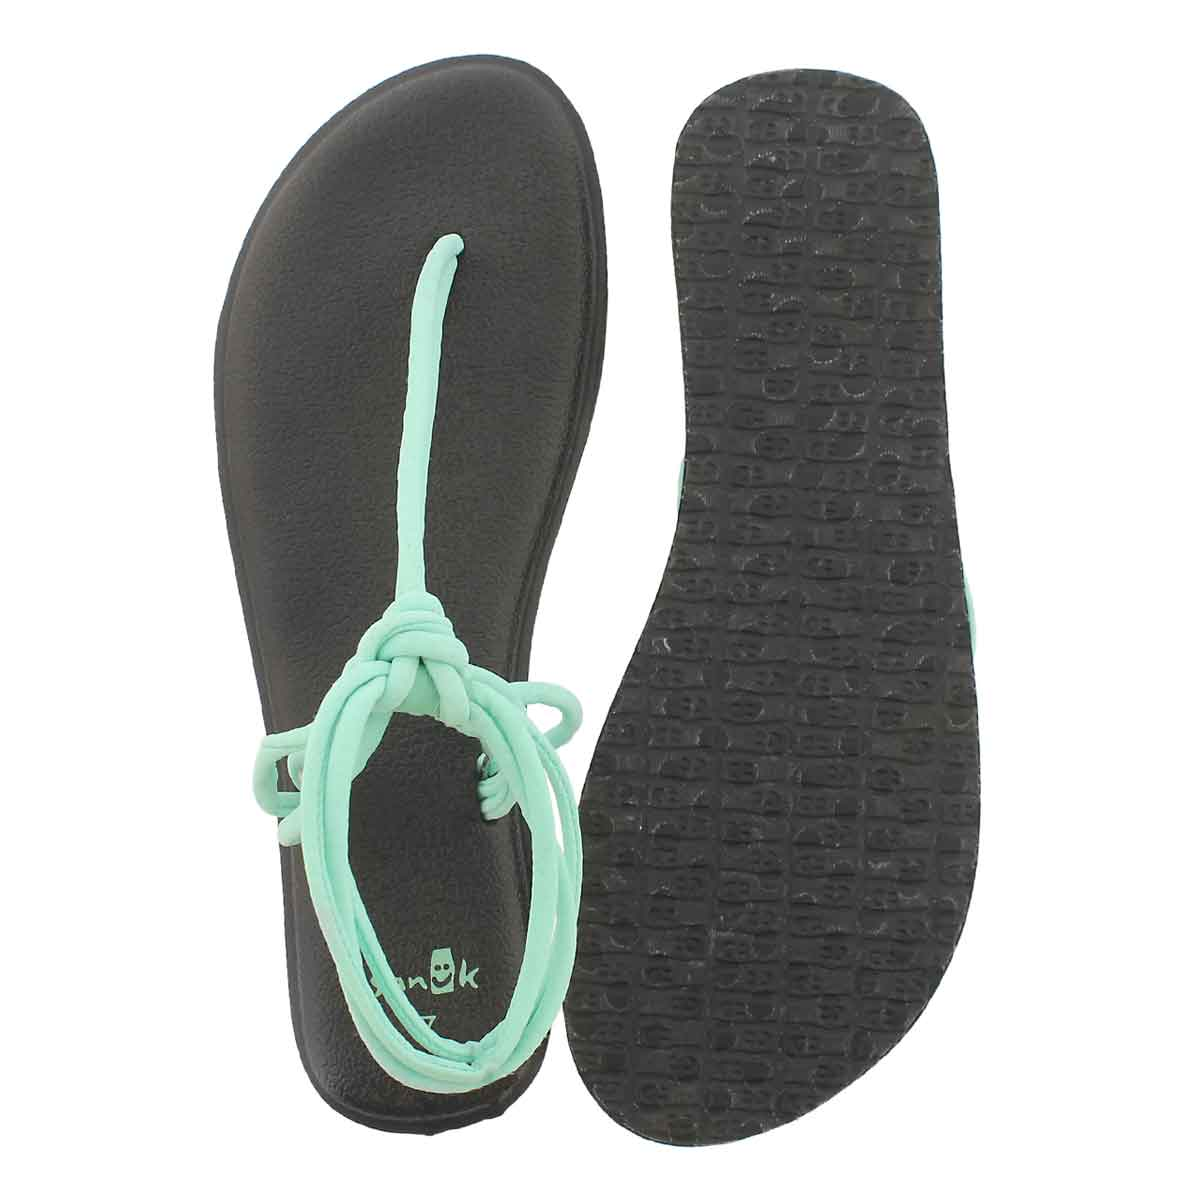 Lds Yoga Sunshine opal thong sandal